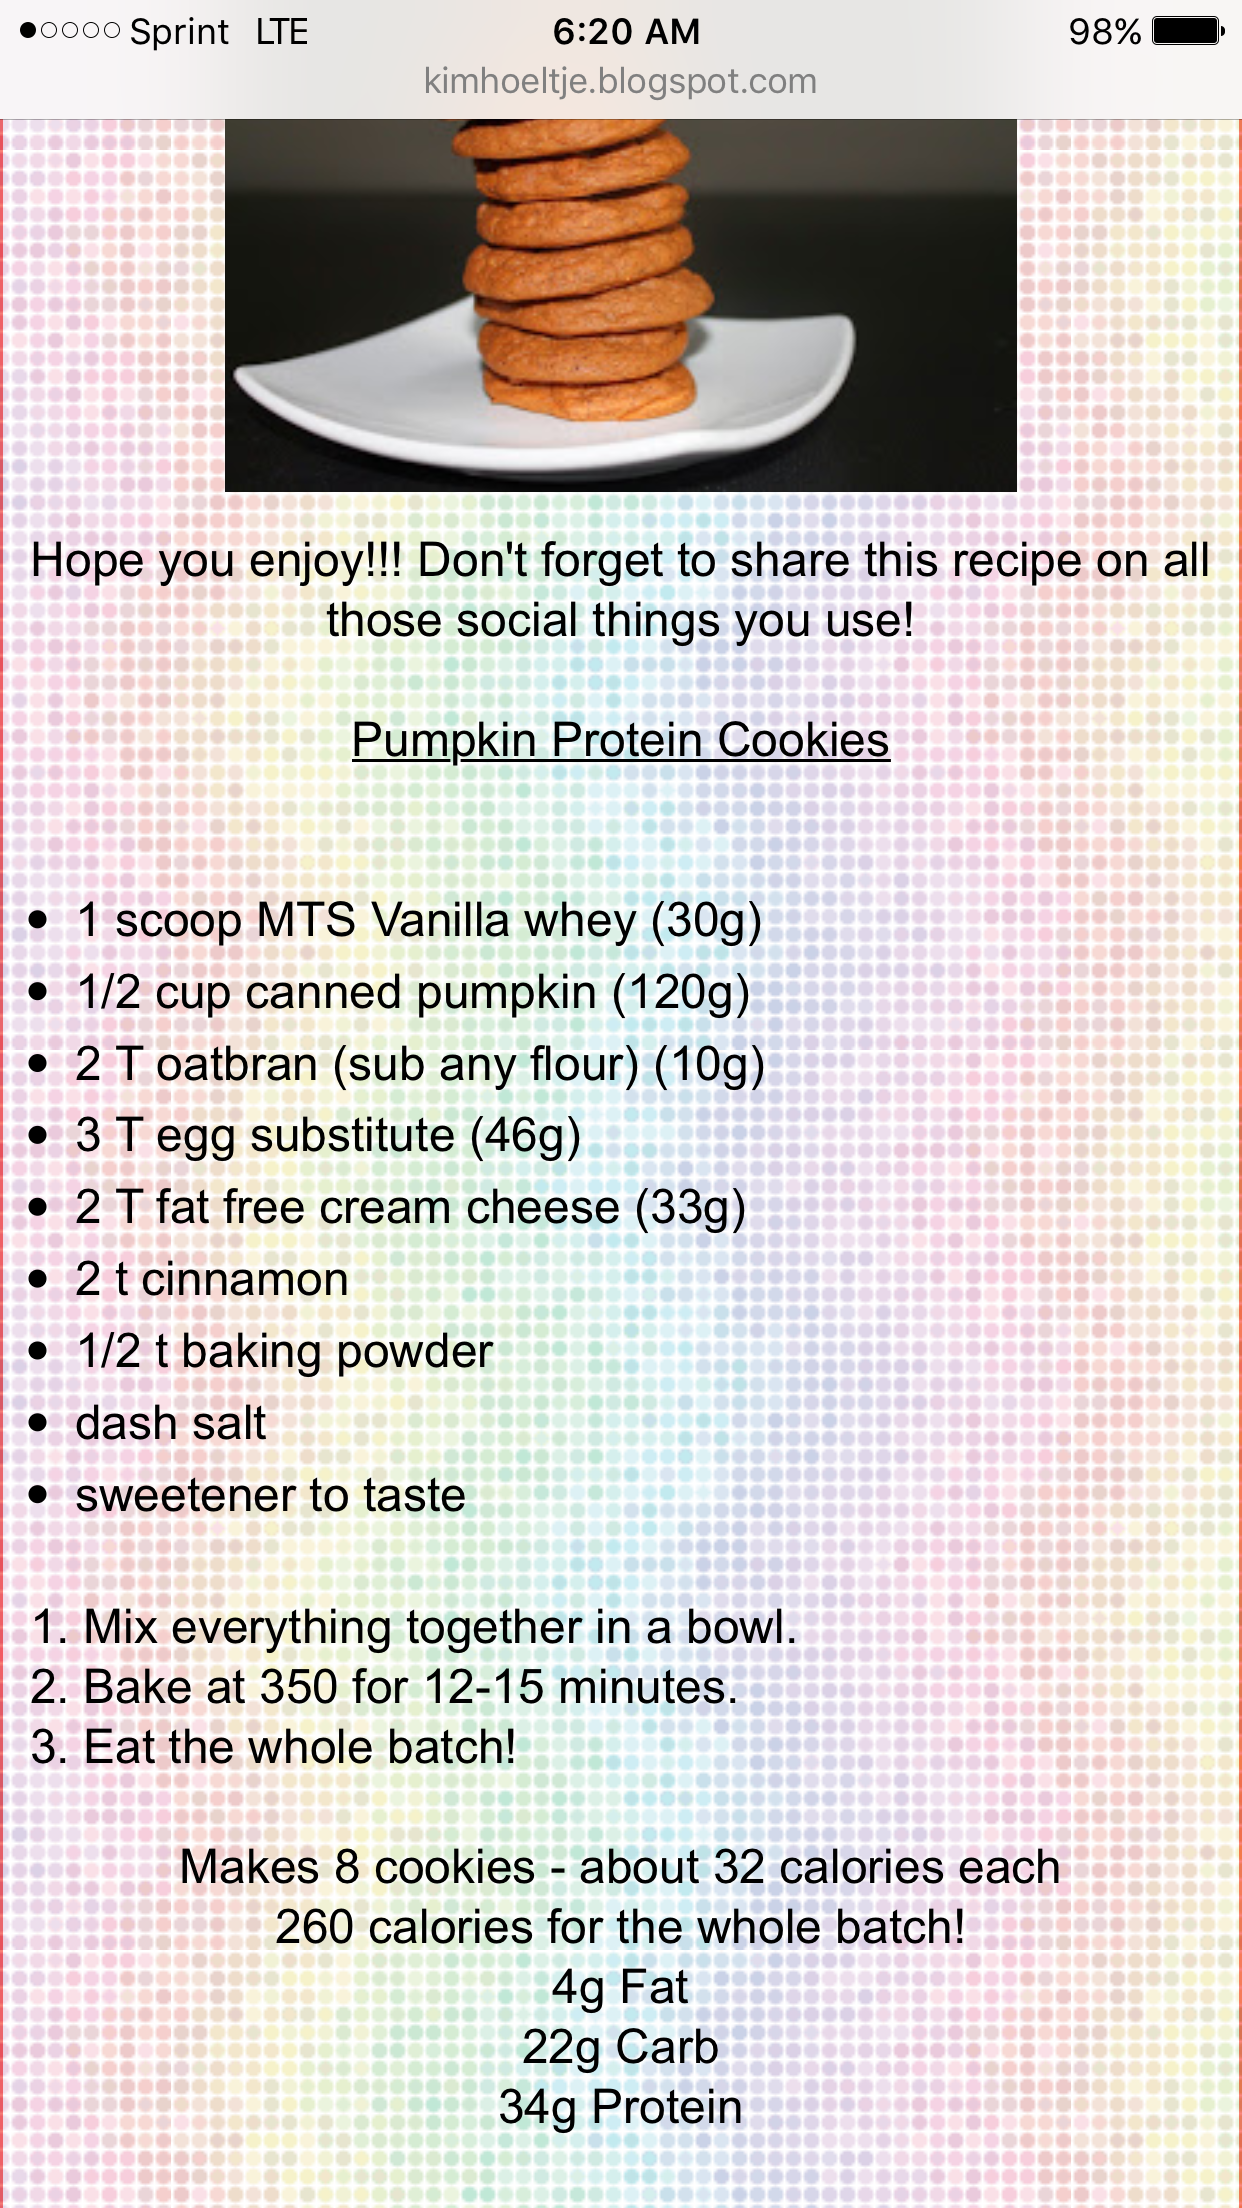 Mm deli Protein cookies, Canned pumpkin, Substitute for egg